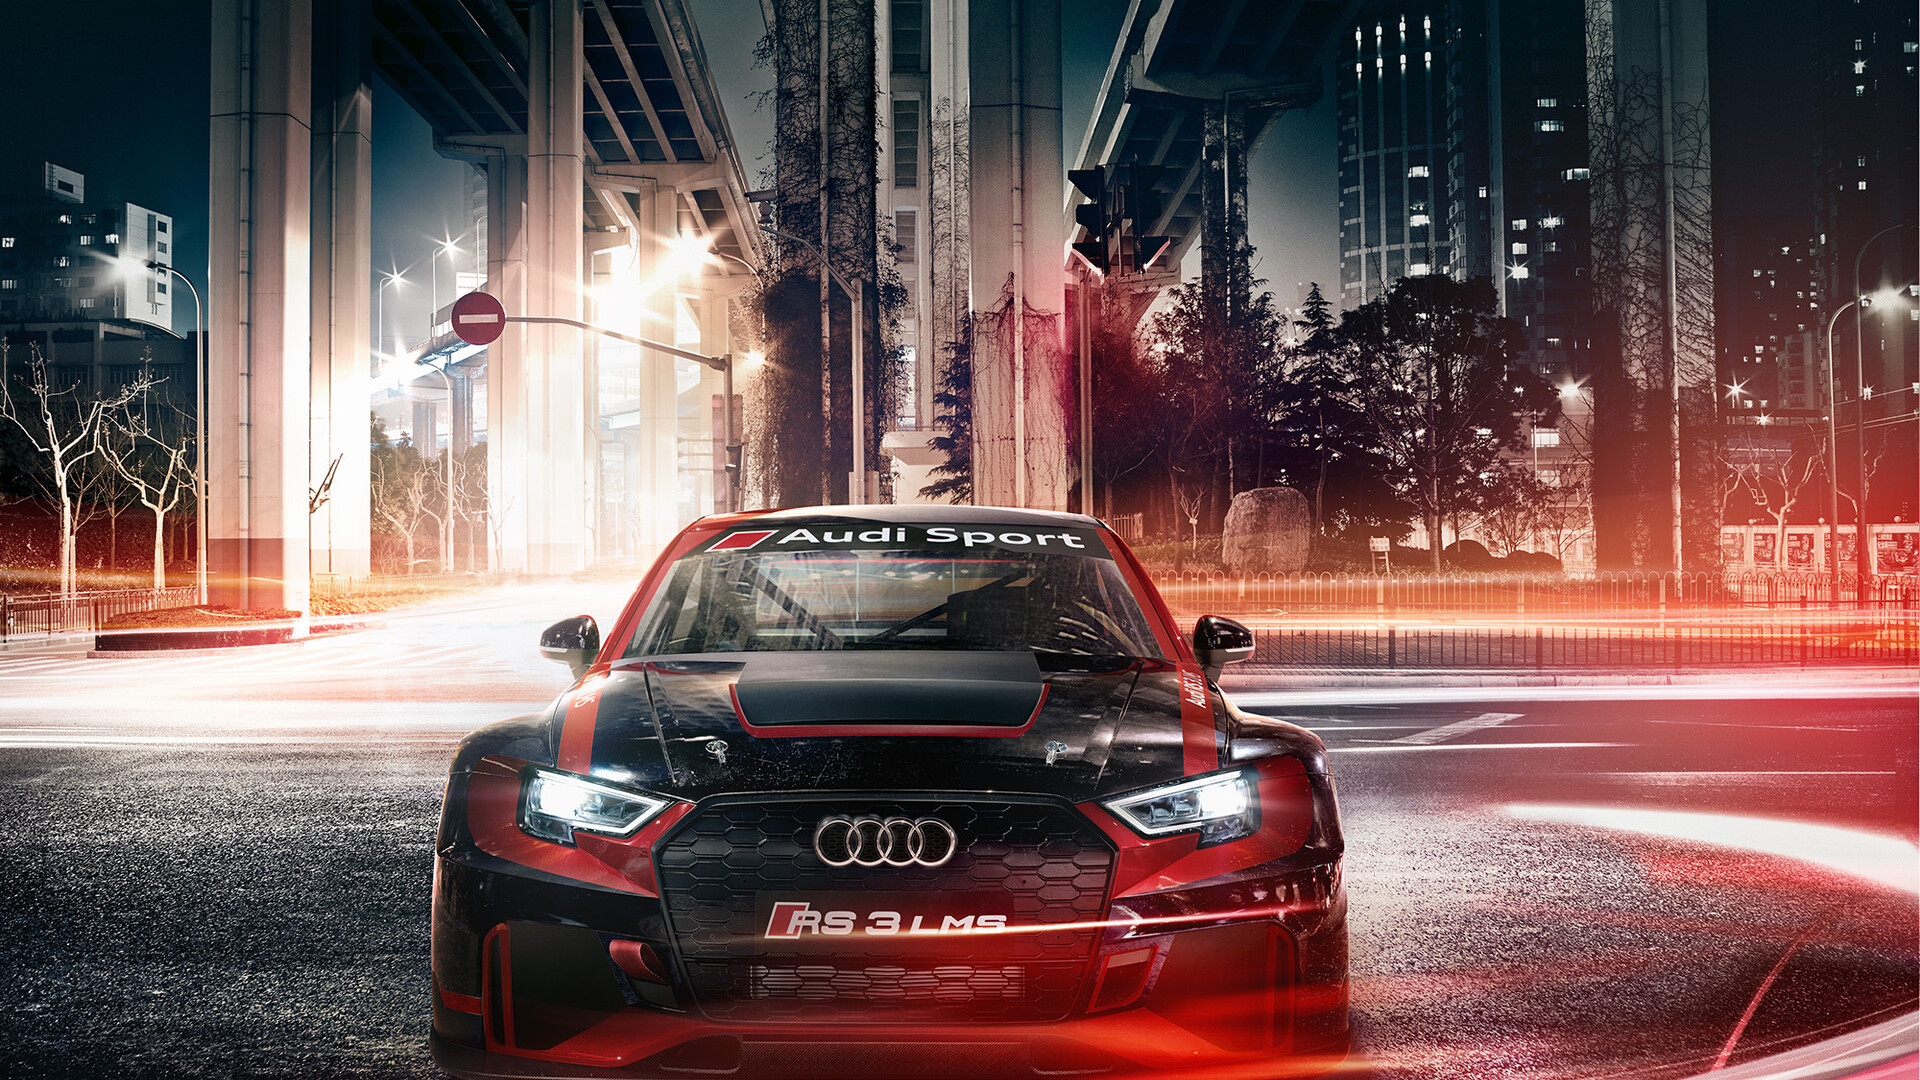 1920x1080 Audi Rs 3 Laptop Full Hd 1080p Hd 4k Wallpapers Images Backgrounds Photos And Pictures